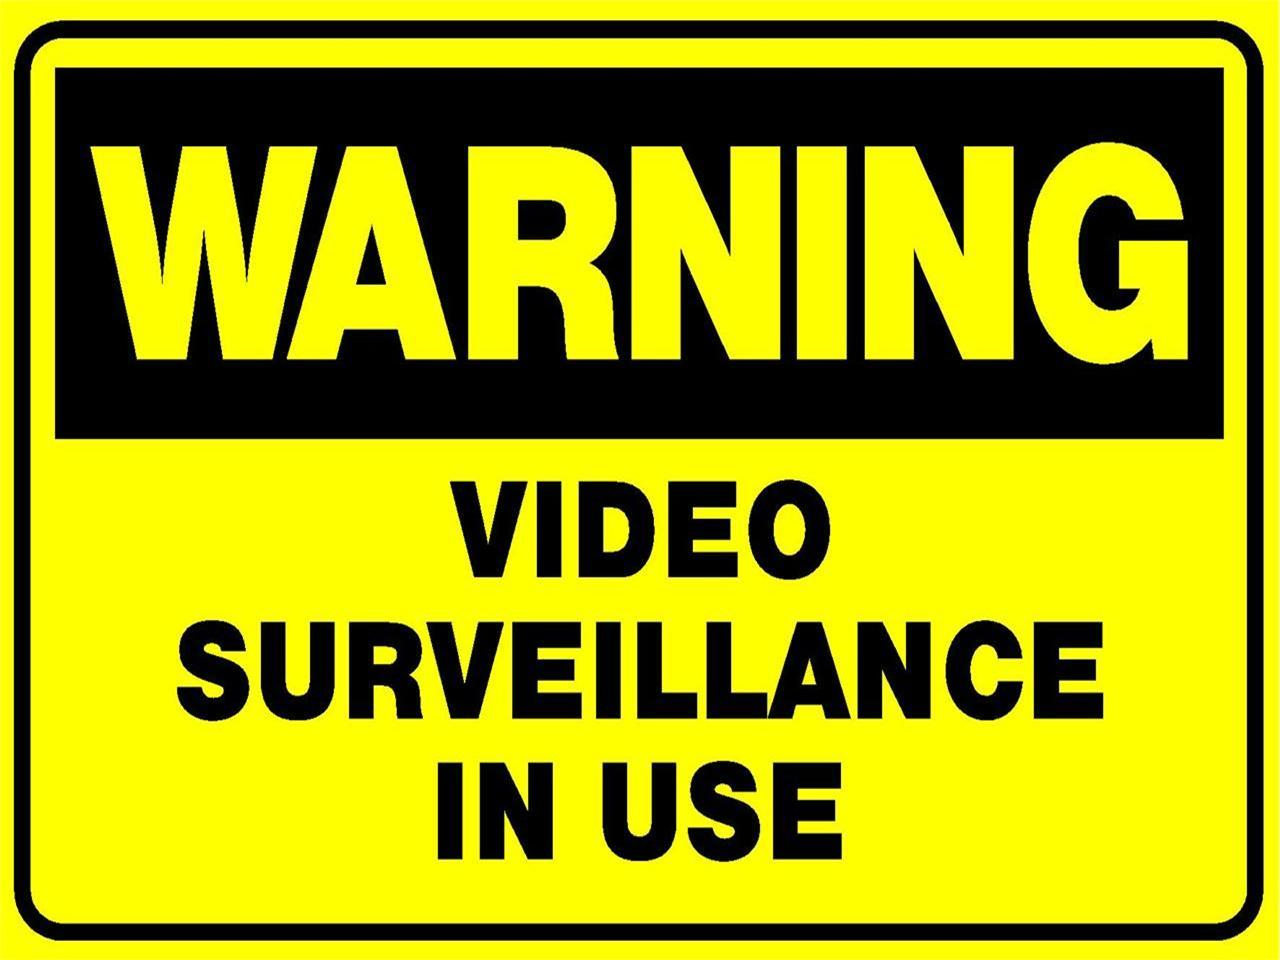 video surveillance cctv camera 300 x 225mm metal sign security caution sign ebay. Black Bedroom Furniture Sets. Home Design Ideas